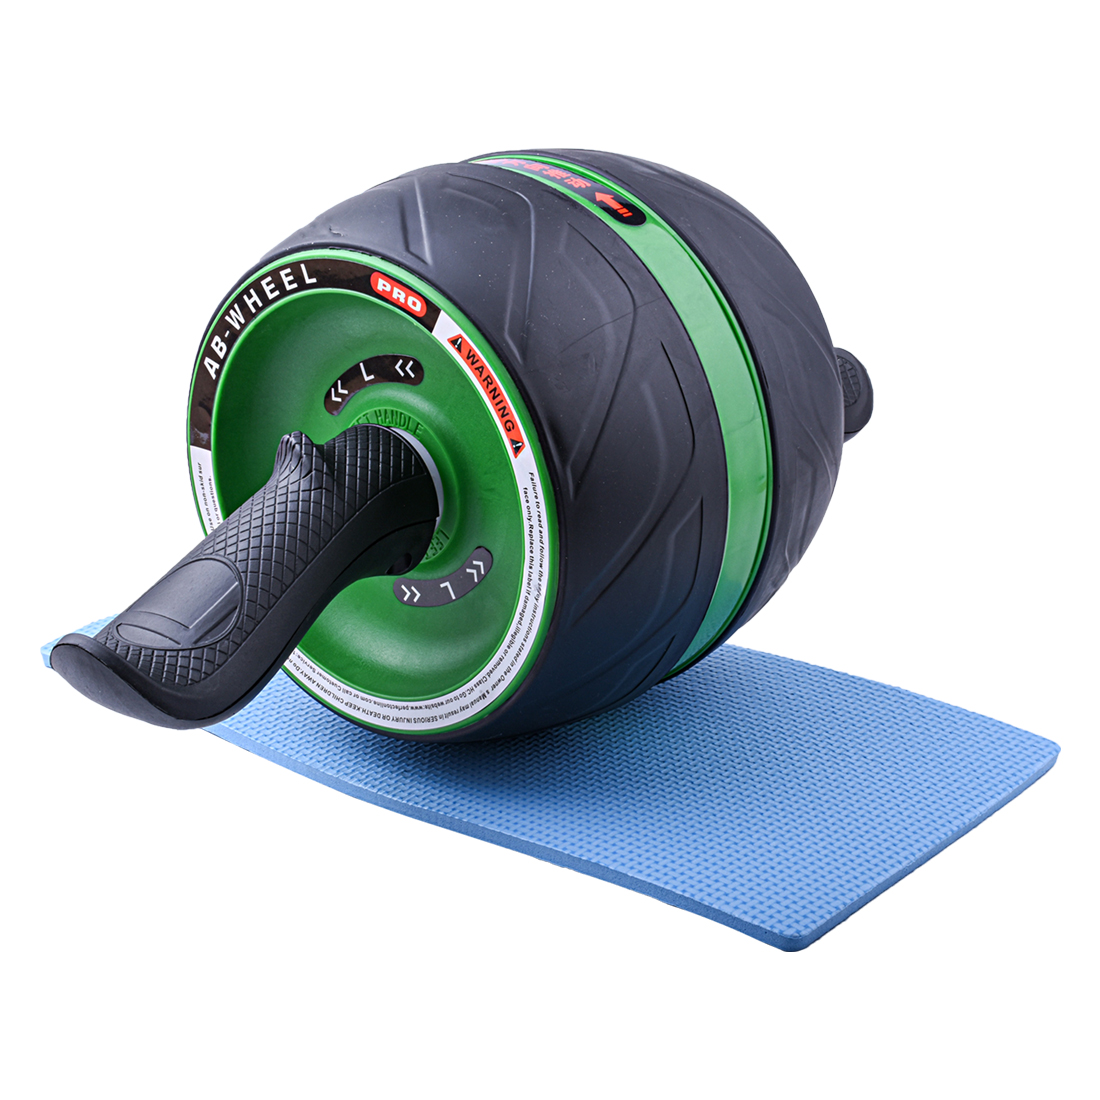 Fitness Ab Carver Pro Roller Wheel For Core Workouts Abdominal Muscle Trainer Home Gym And Exercise Body Building Equipment